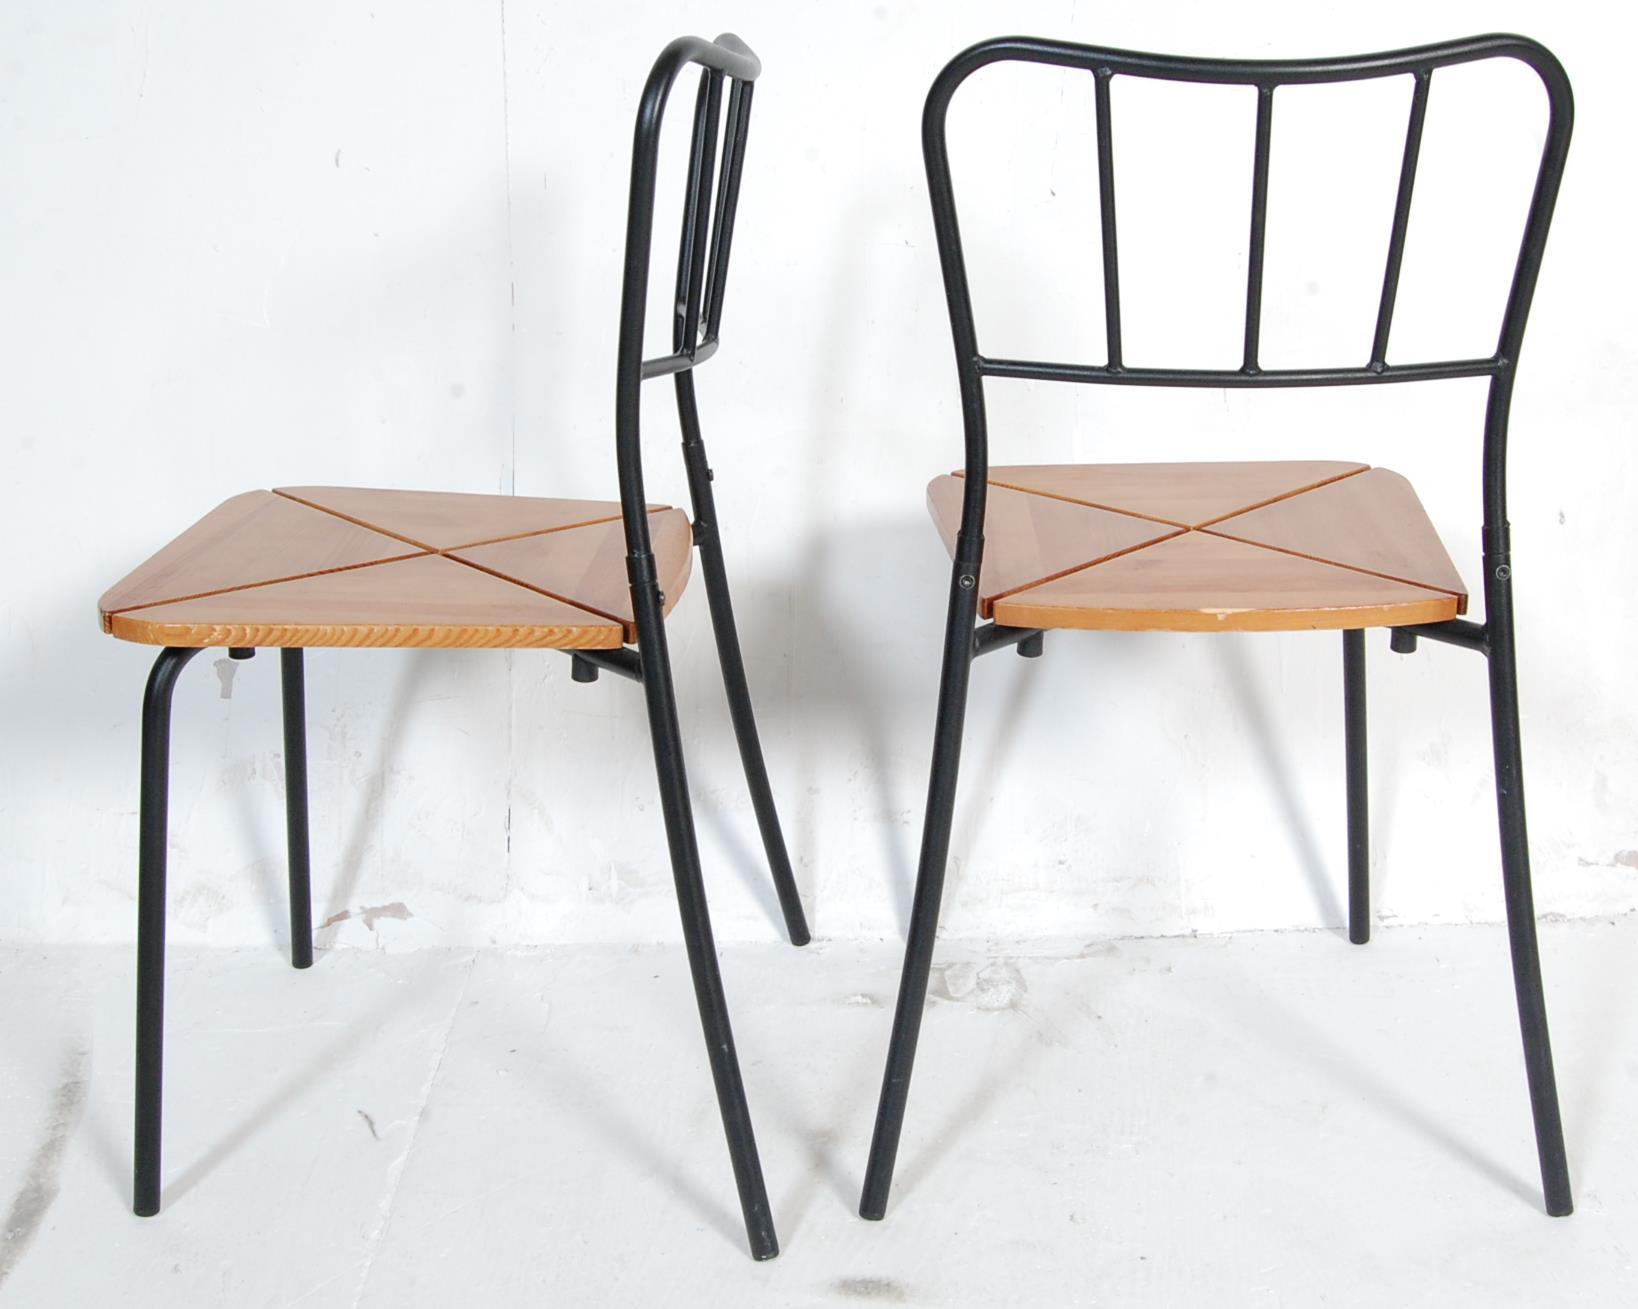 SET OF FOUR CONTEMPORARY INDUSTRIAL DINING CHAIRS - Image 7 of 7